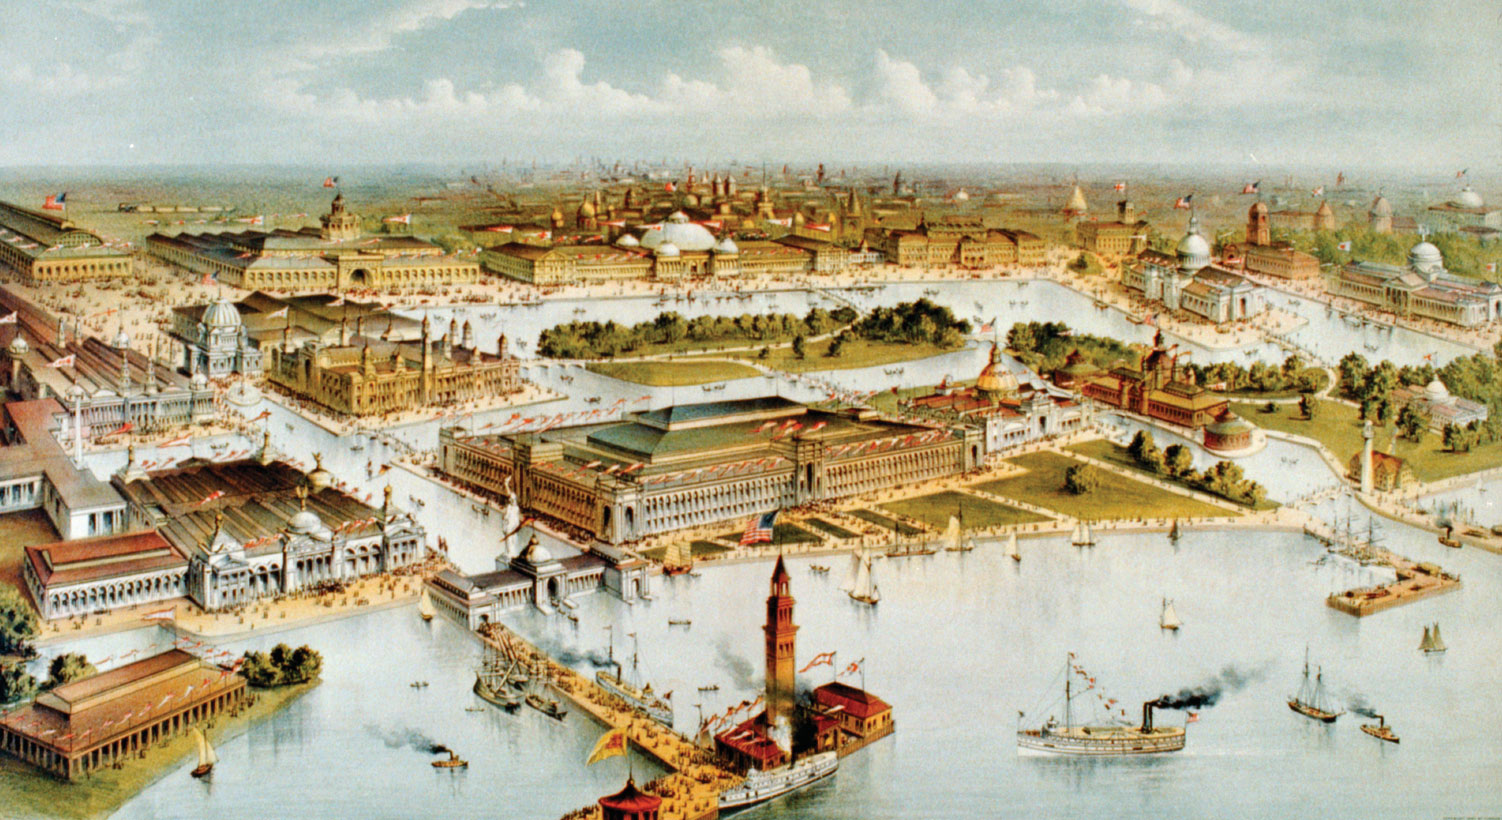 view-grounds-buildings-lakefront-Worlds-Columbian-Exposition-1892